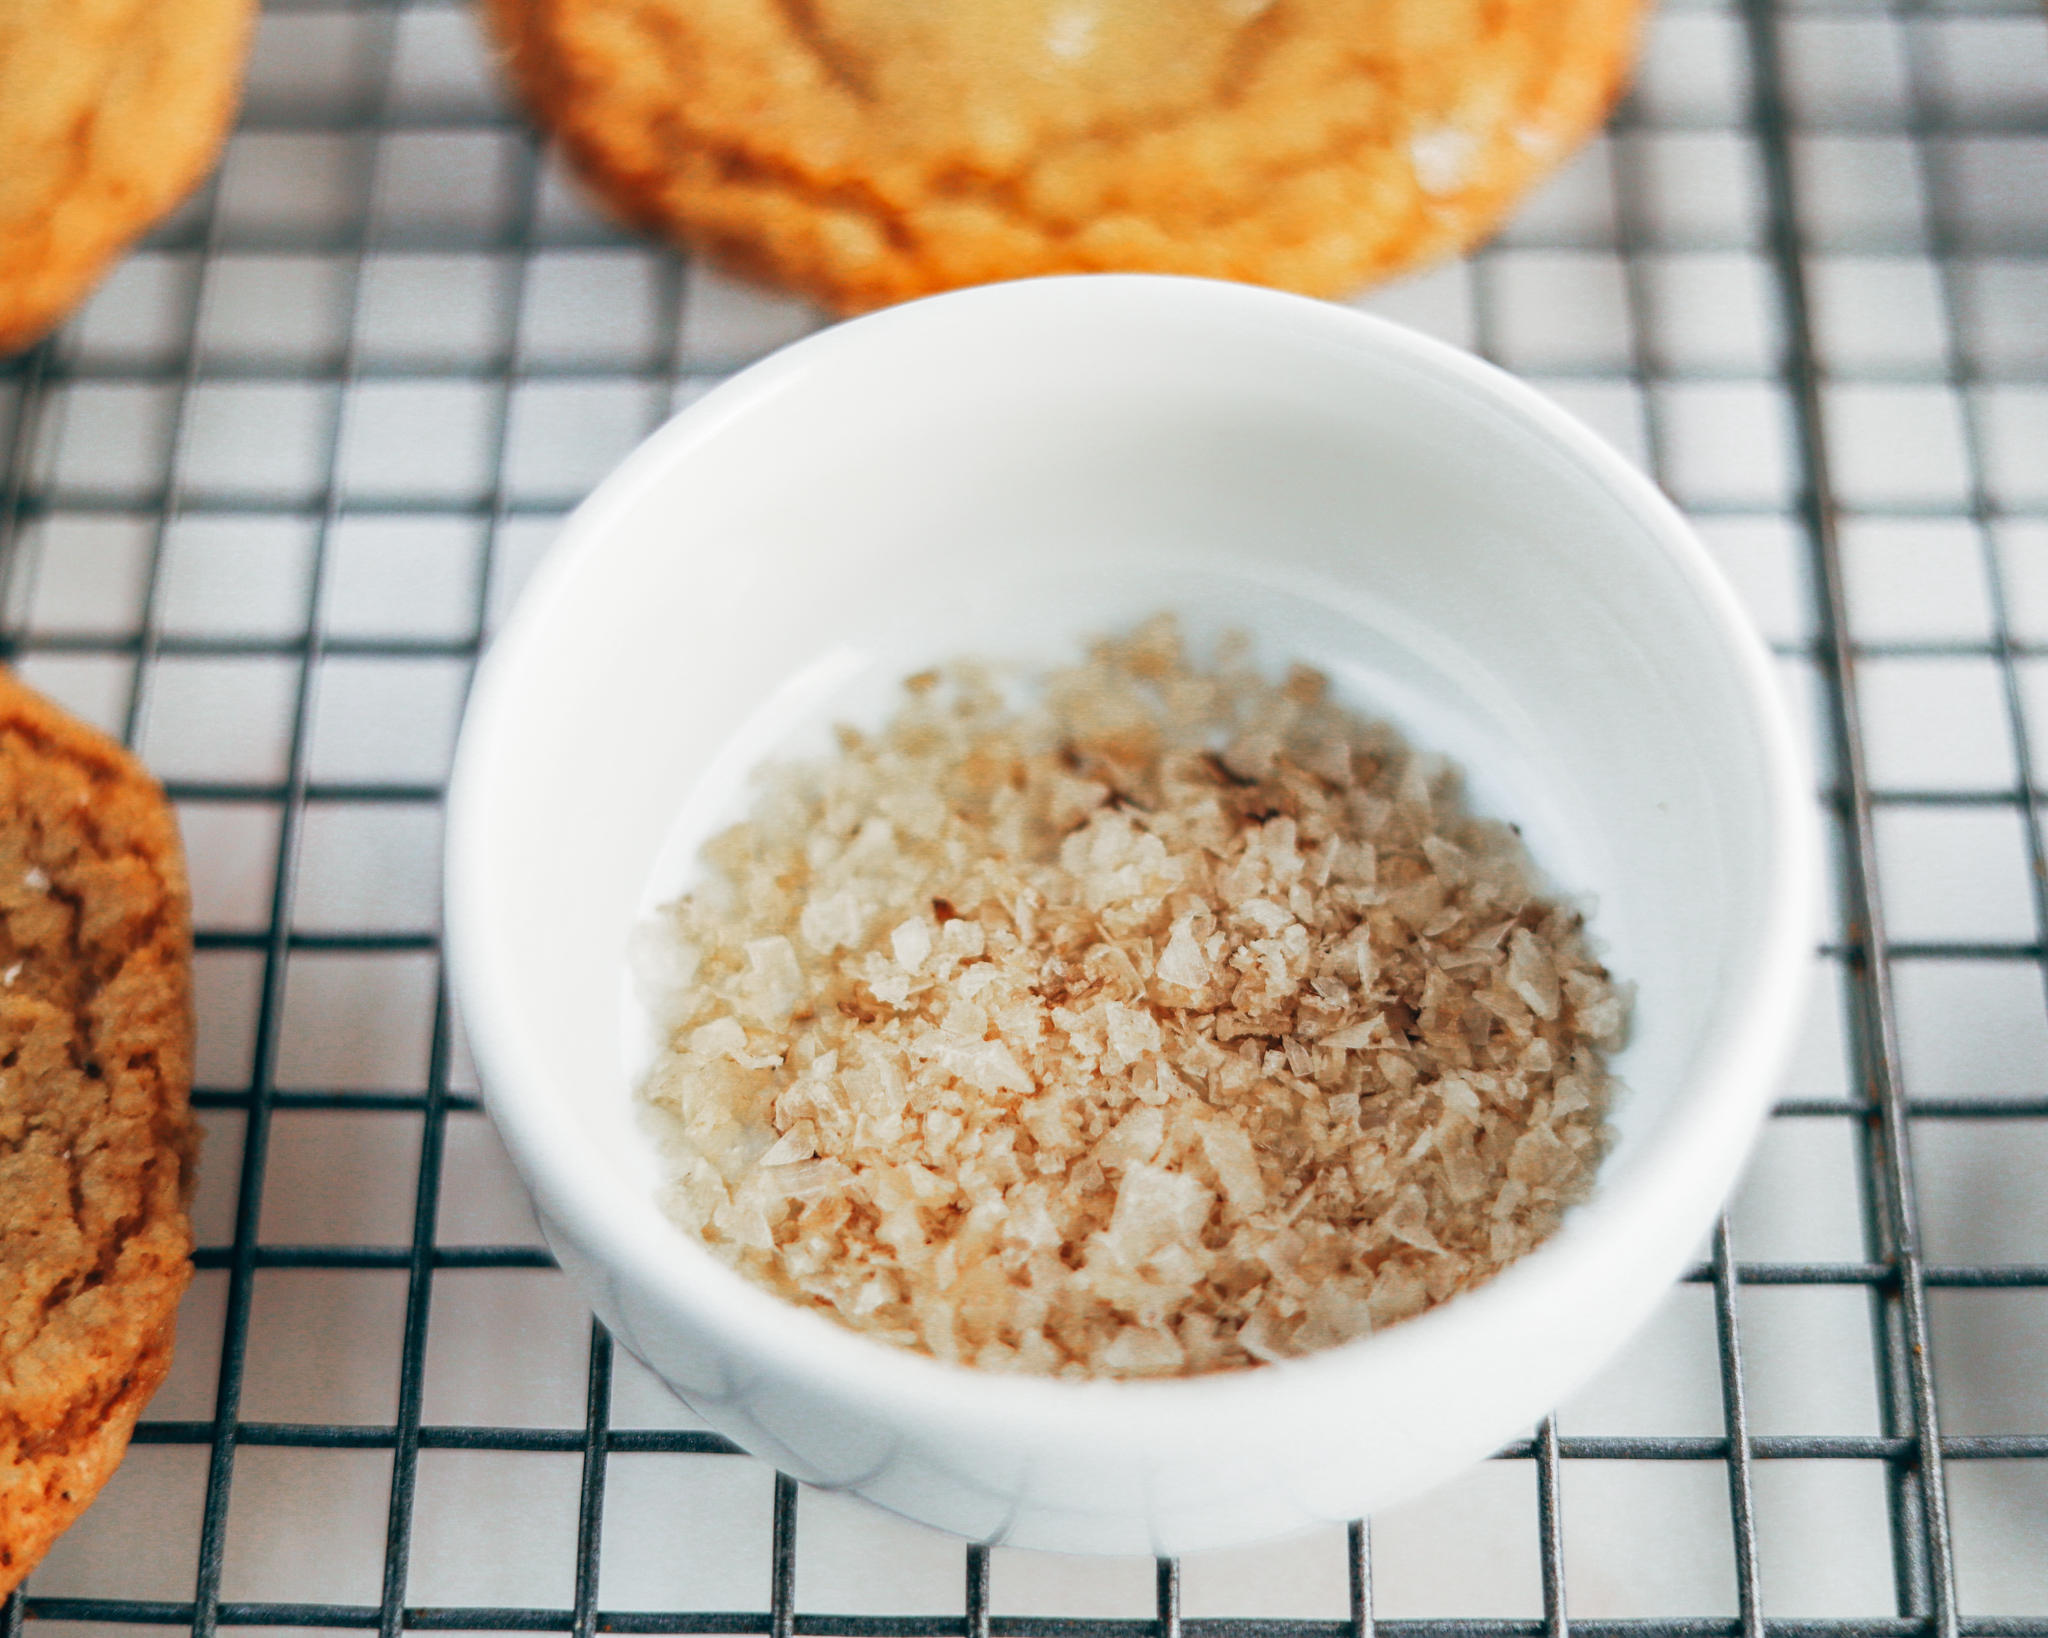 white pinch bowl holds a tablespoon of smoked sea salt flakes